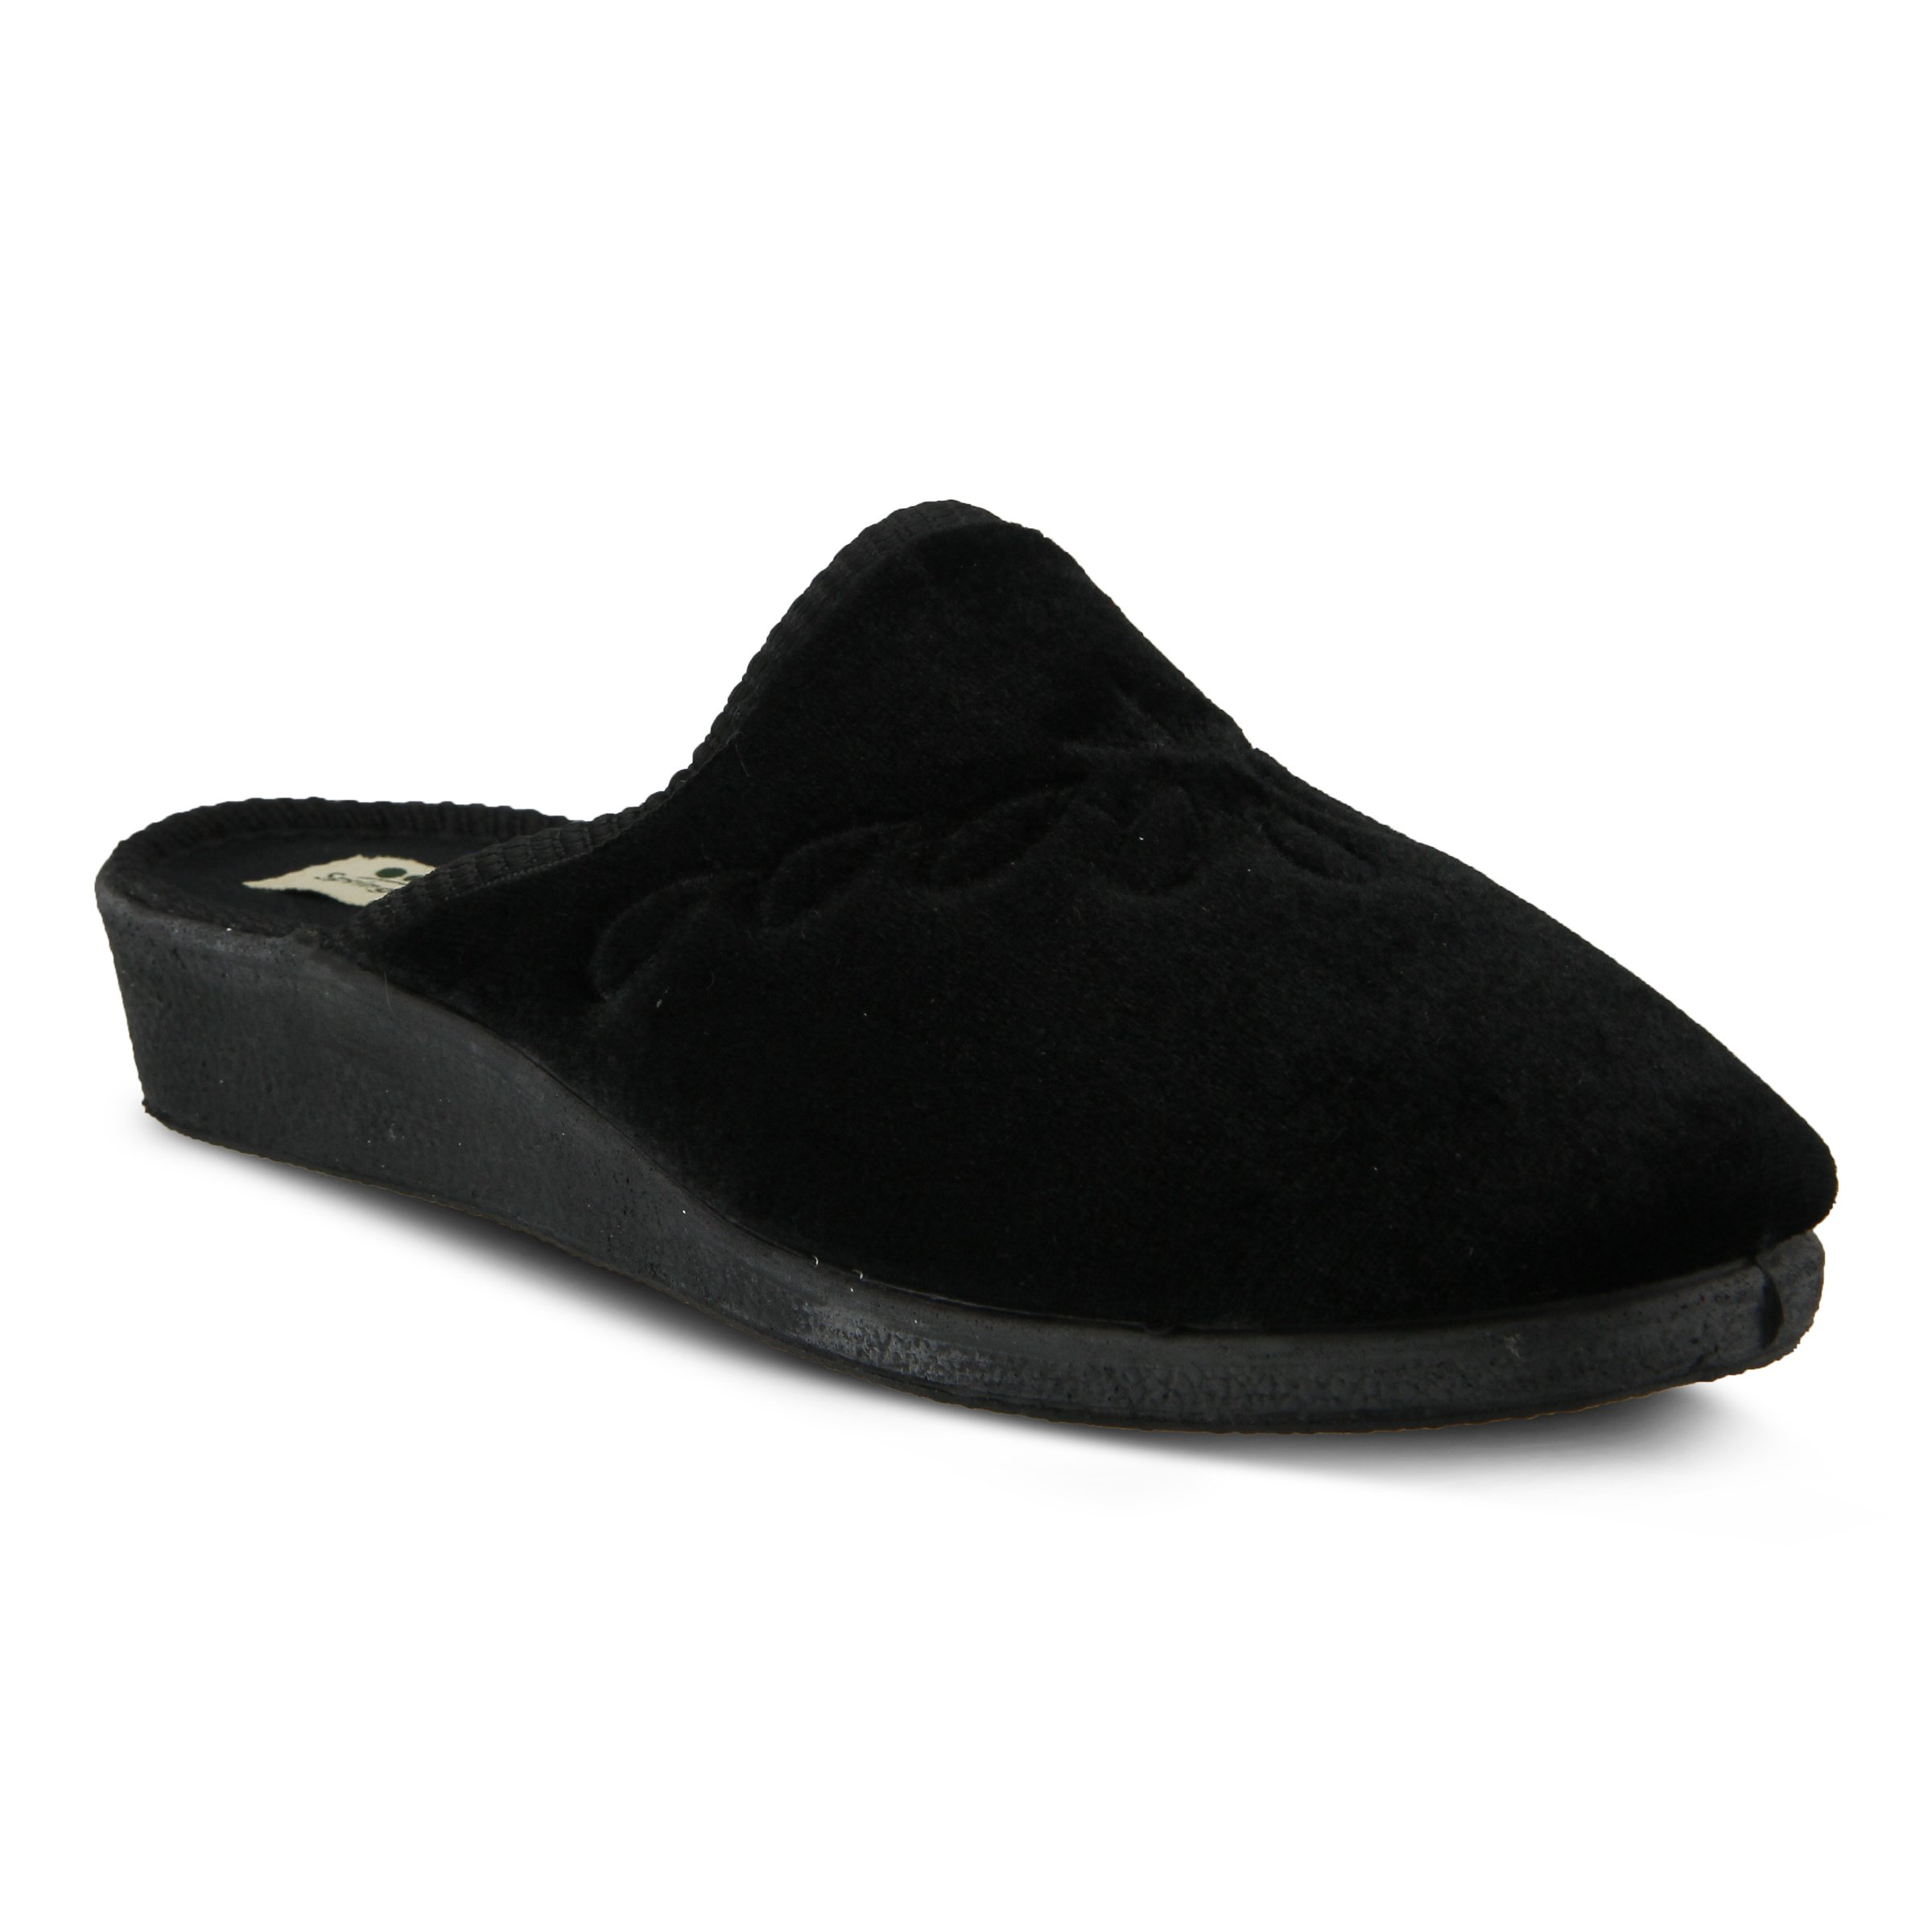 Spring Step Women's Josie Slip on Slipper, Black, 36 EU/5.5-6 M US